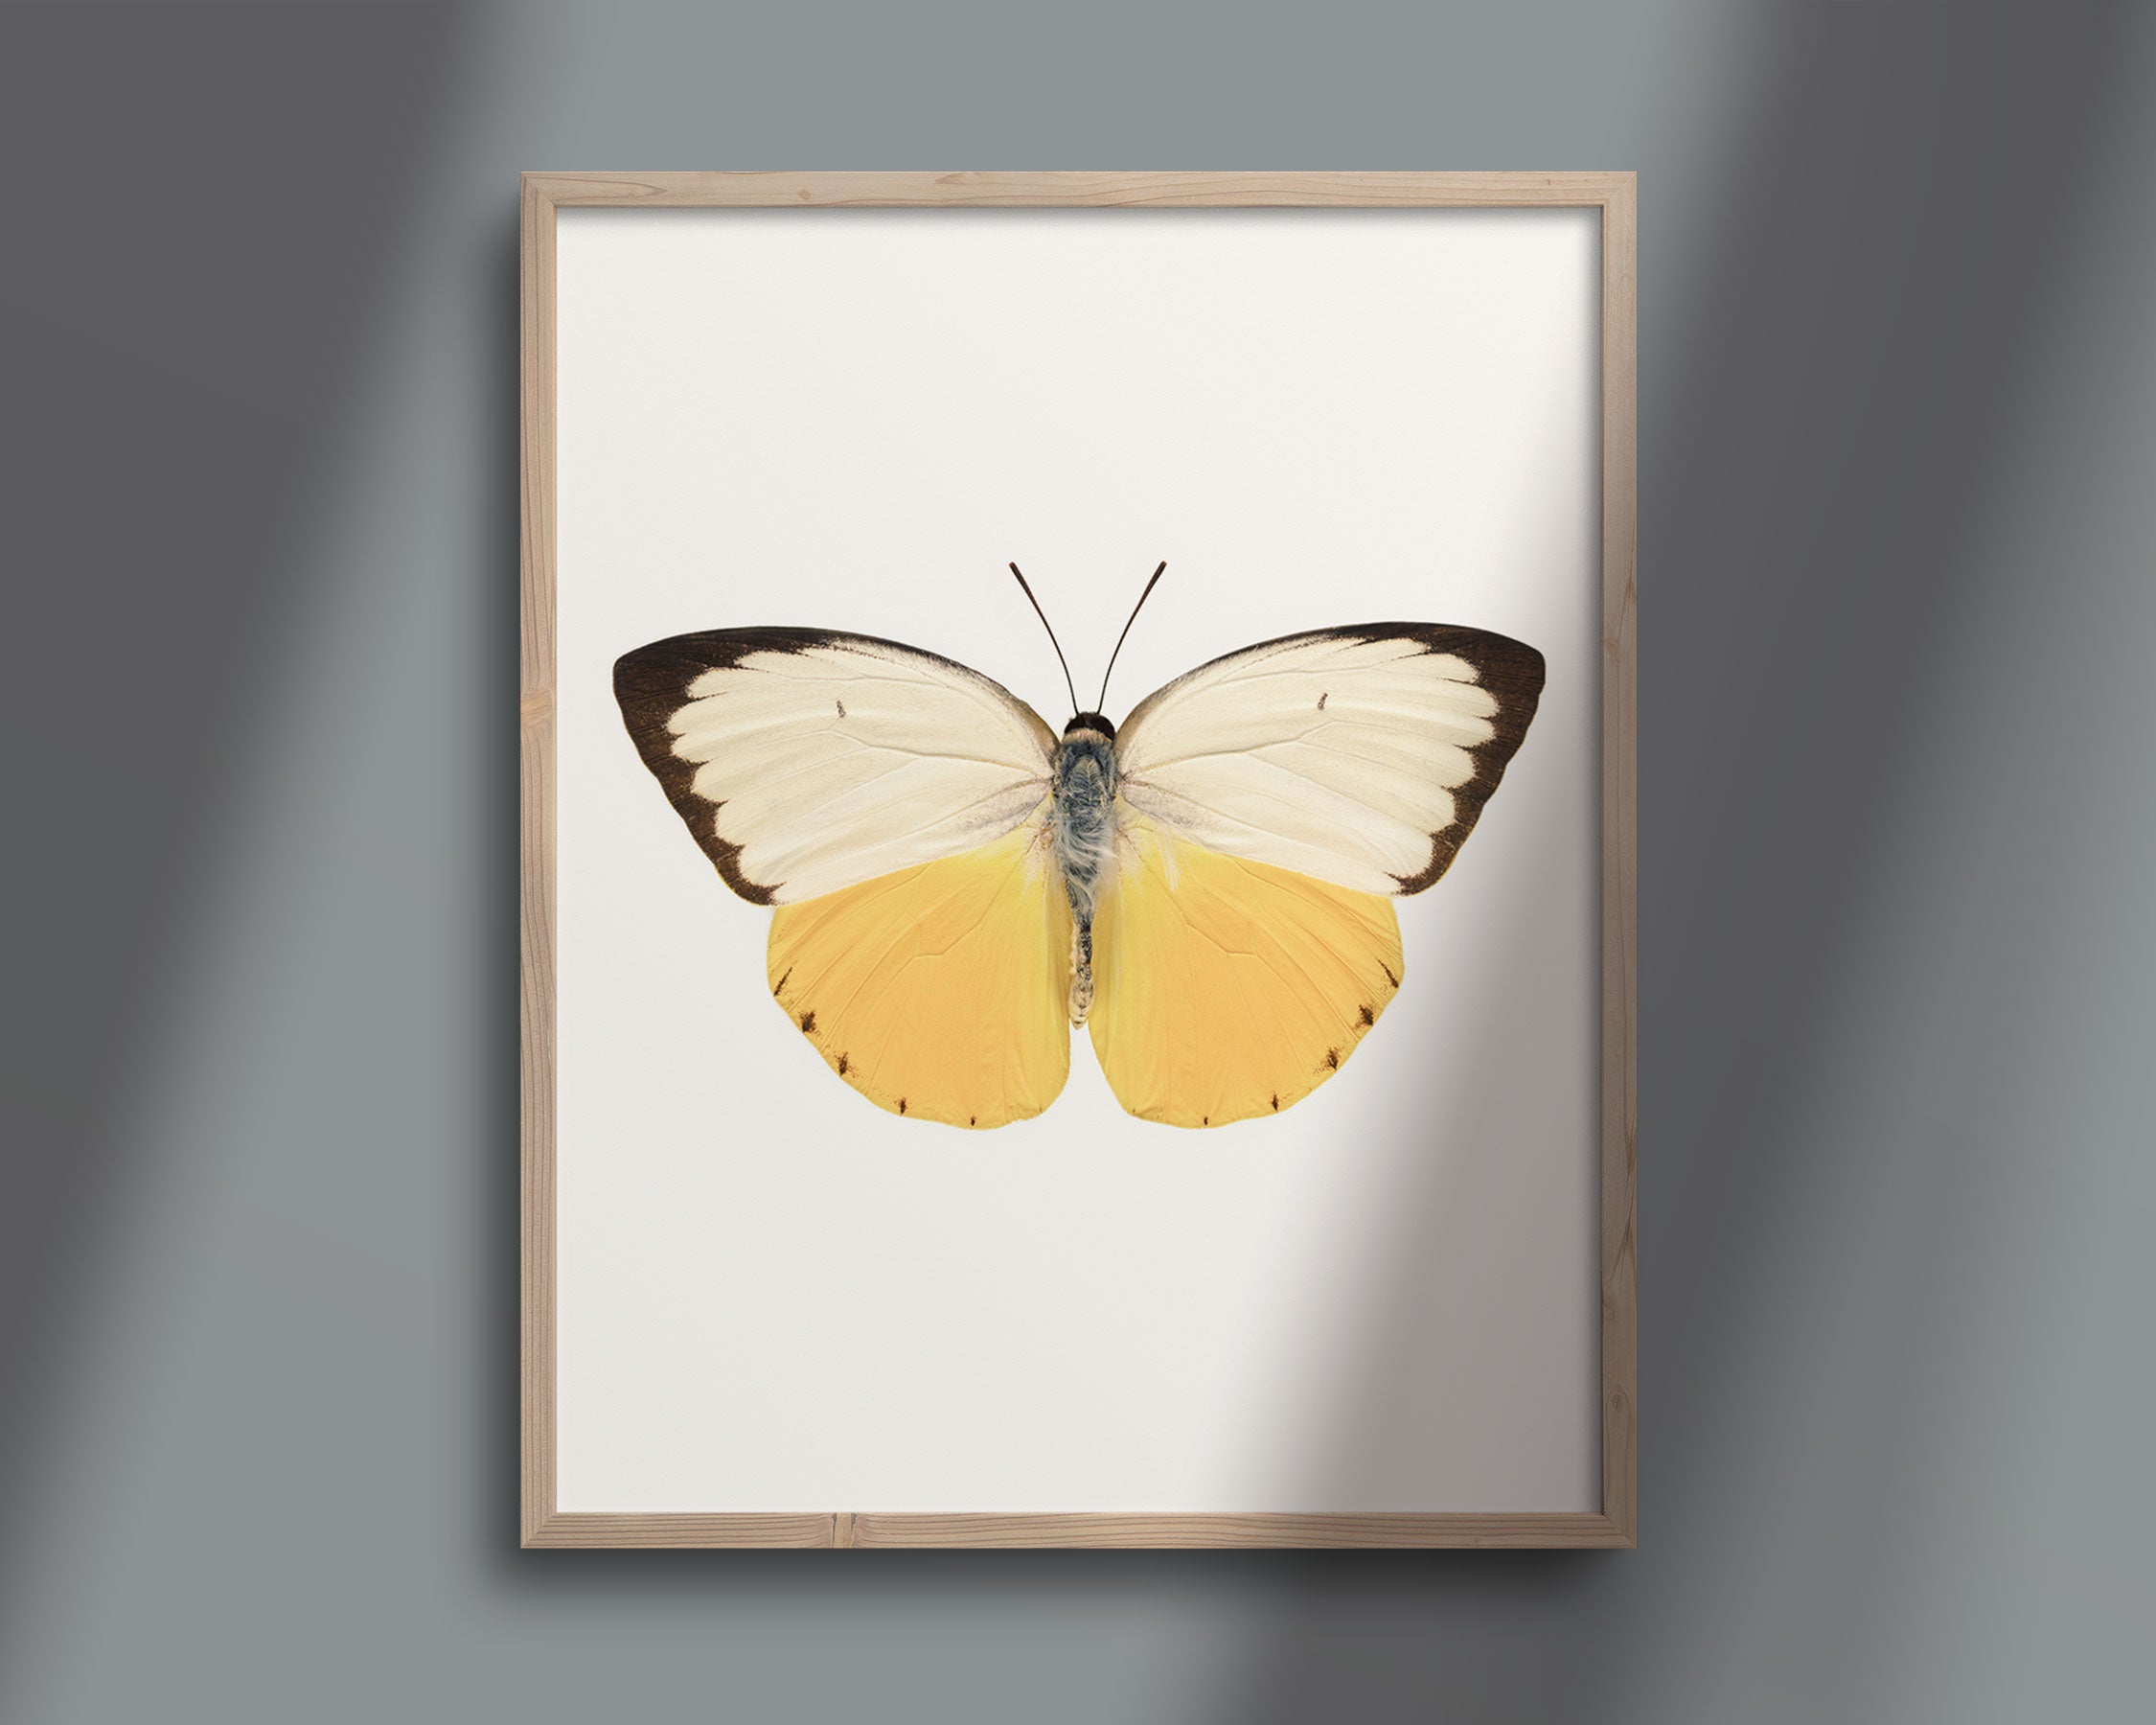 Butterfly No. 7 - the Orange Migrant Butterfly